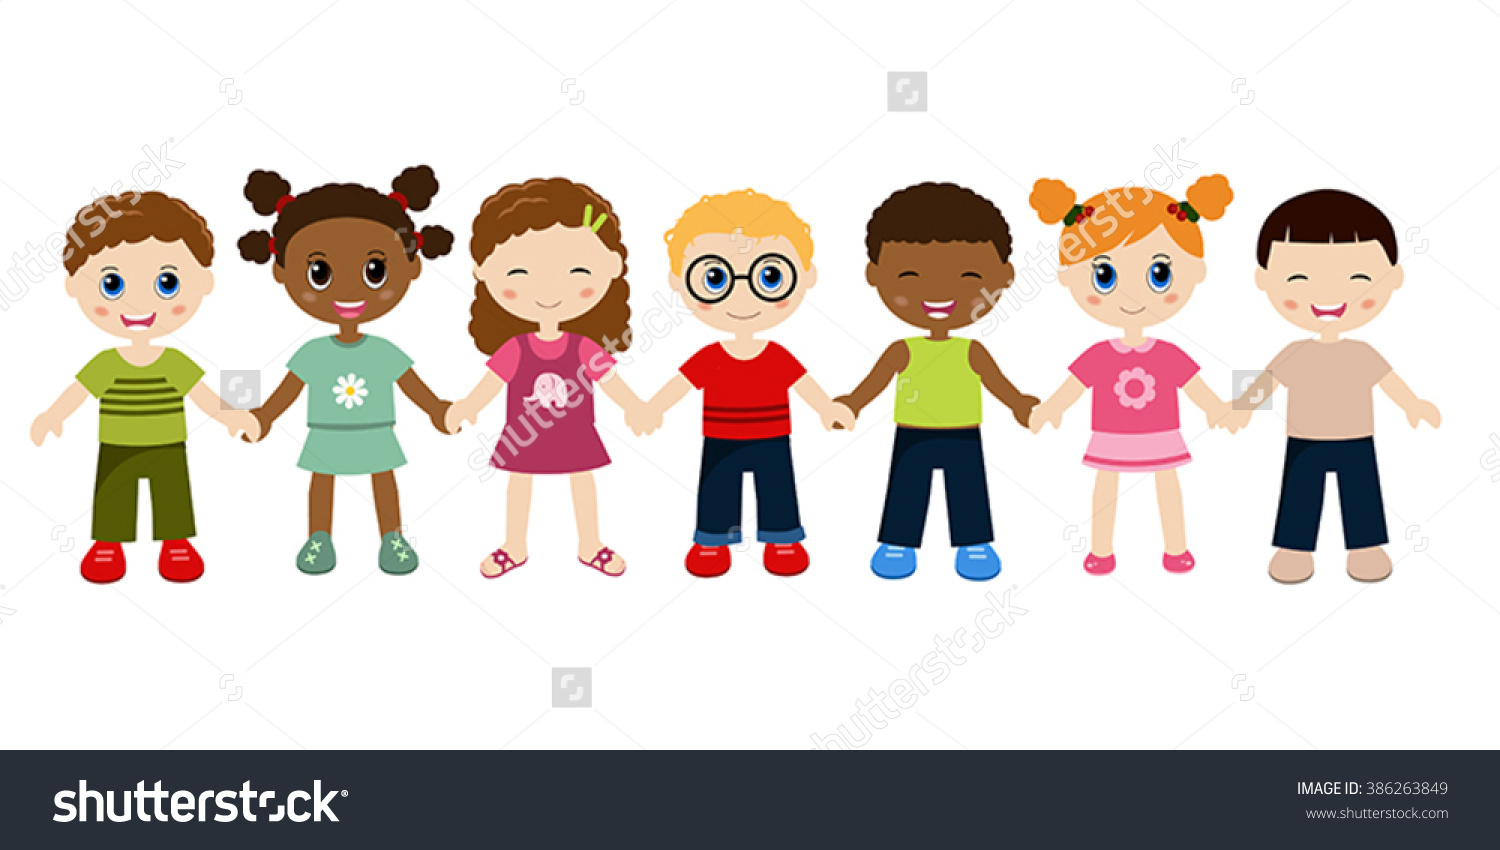 Kids holding hands cute clipart.